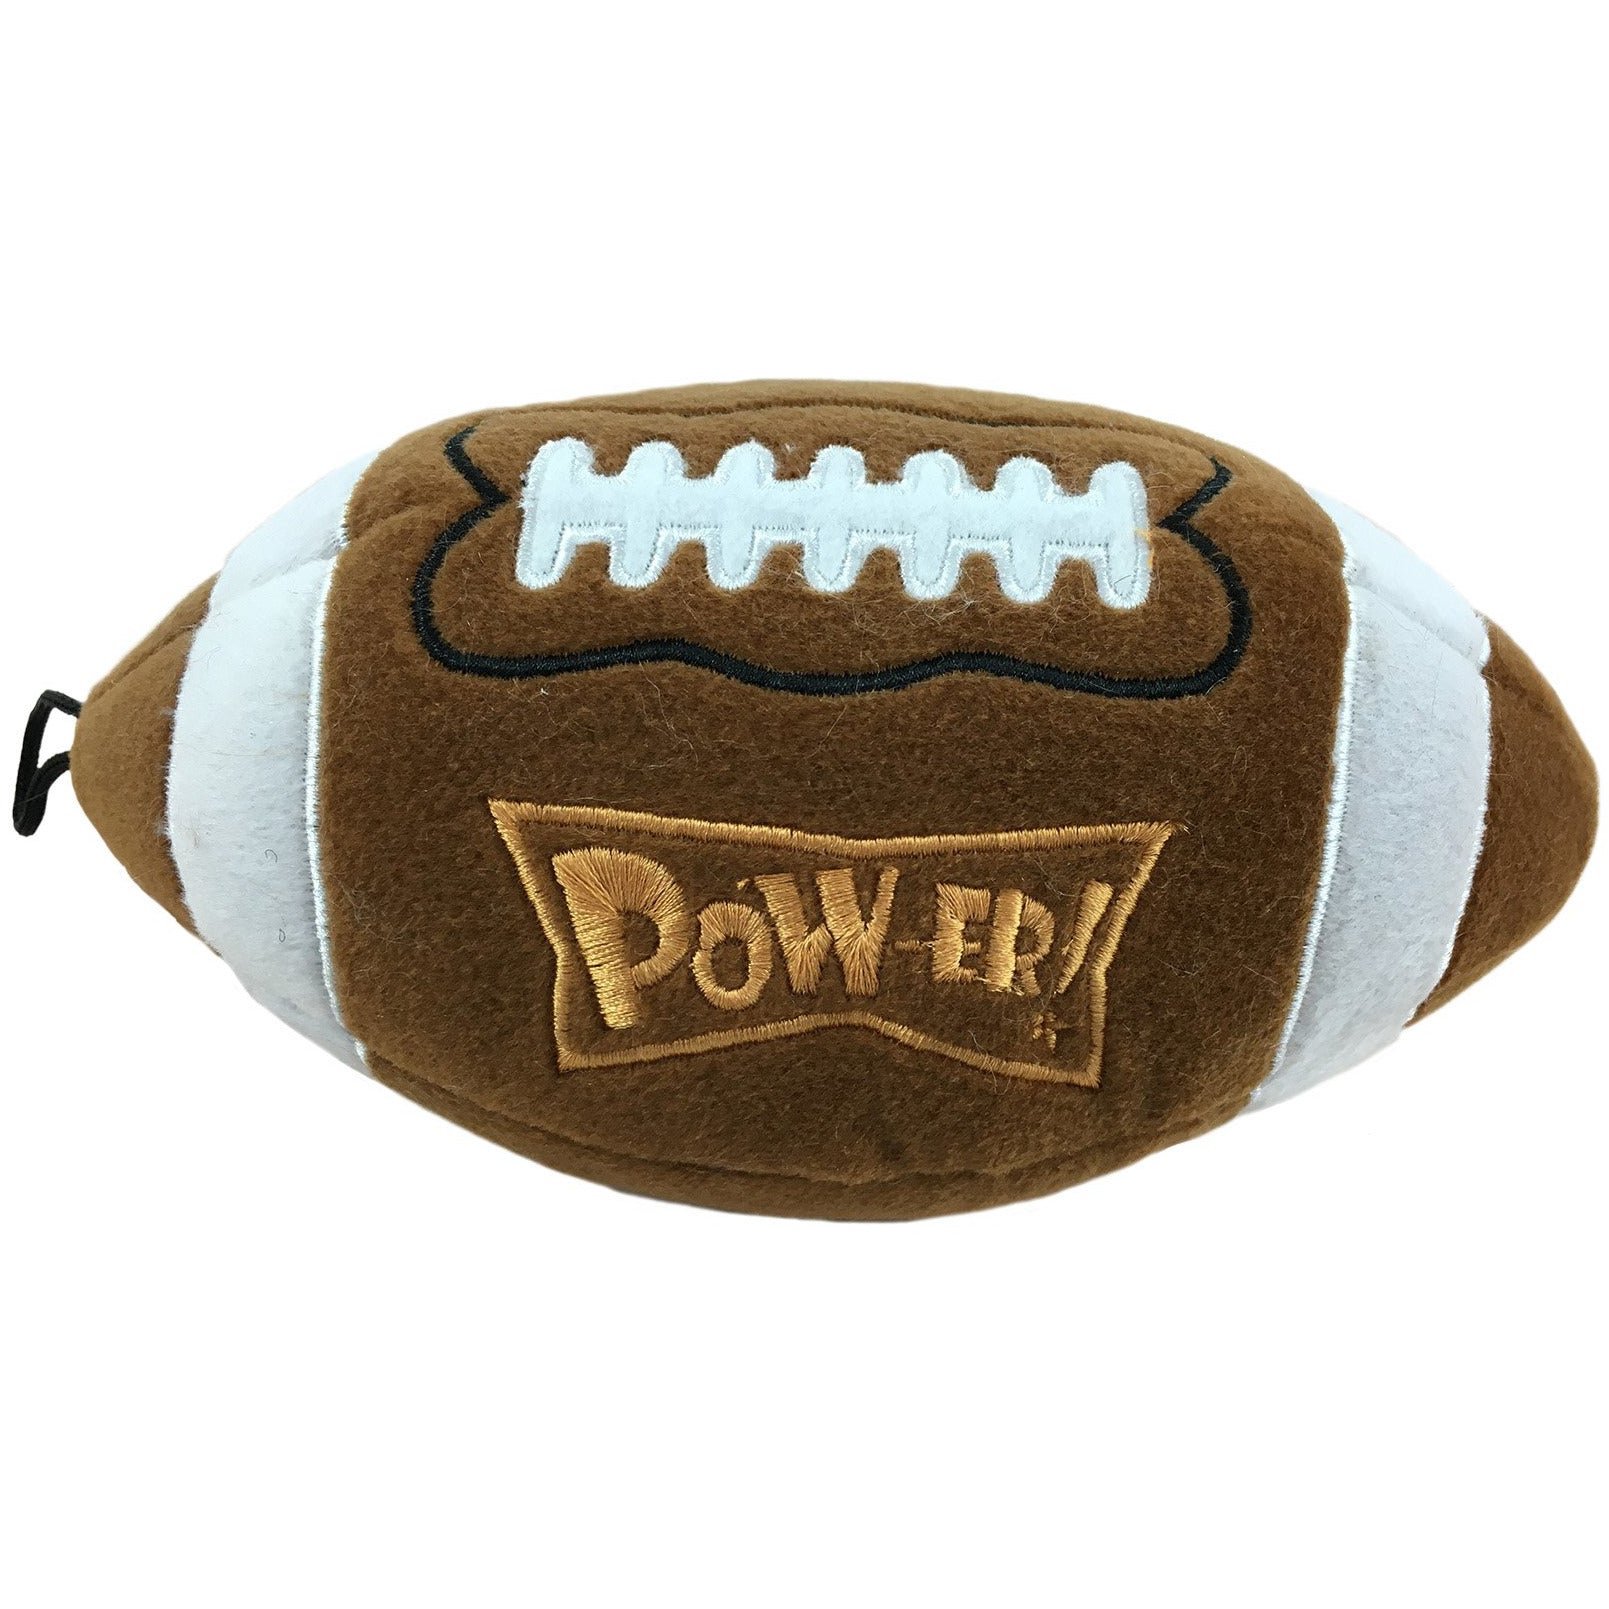 Lulubelles Power Plush Pigskin Dog Toy